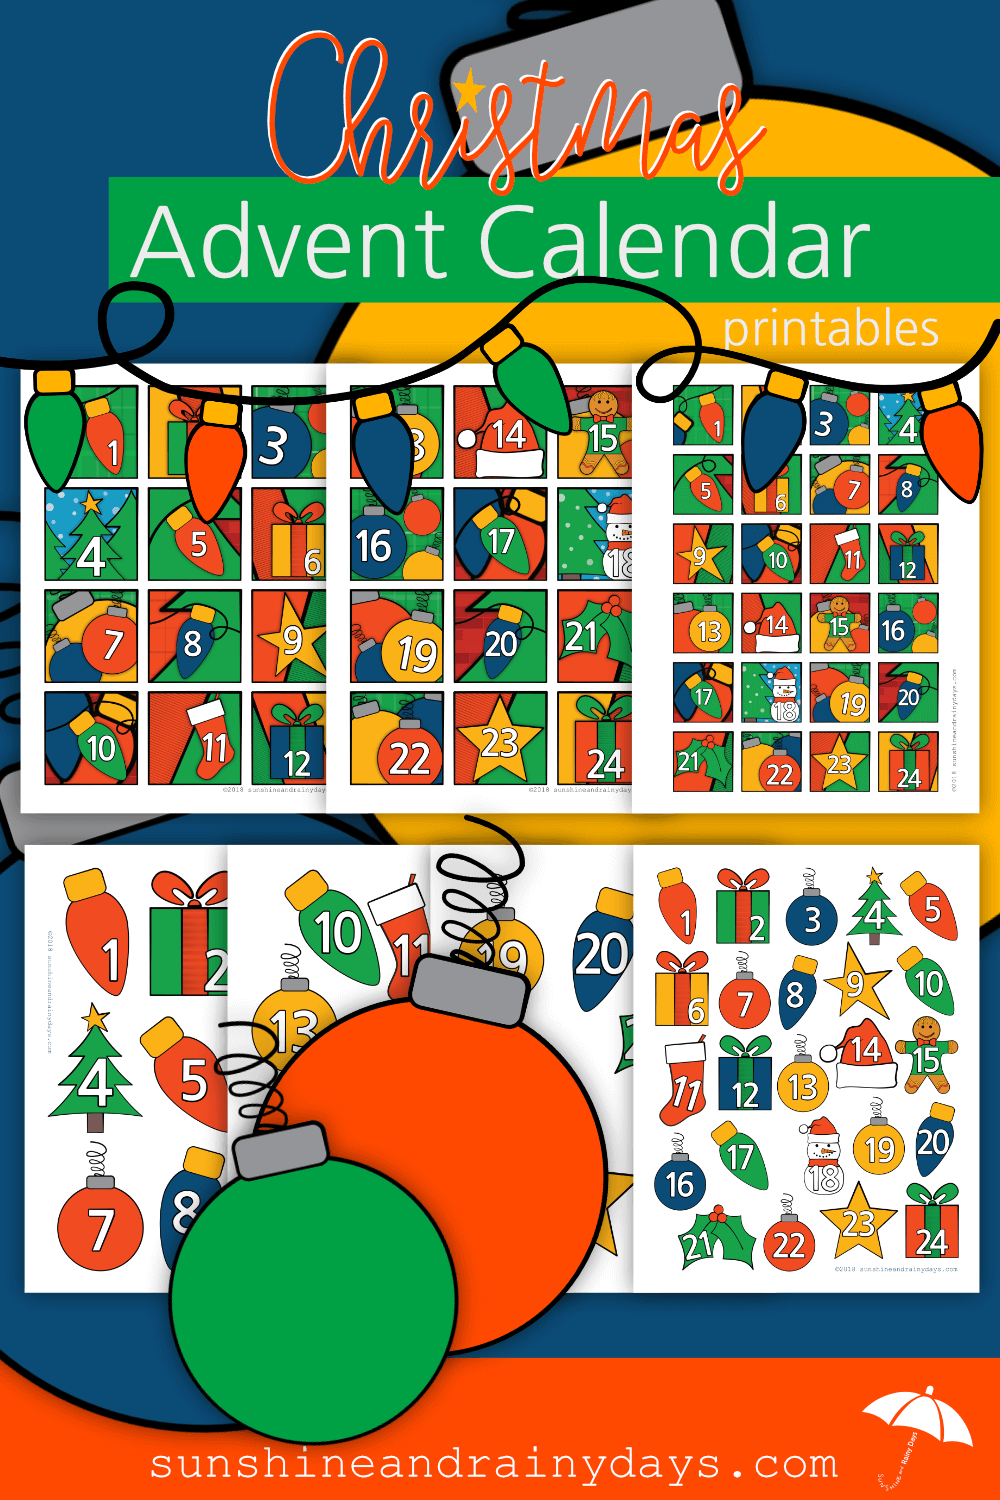 Are you creating your own Advent Calendars this year? We've got a treat for YOU! OurChristmas Advent Calendar Numbersare here to help you number your gifts in style! These numbers can also be used for your Gift Exchange Games! Advent Calendar | Advent Calendar Ideas | Advent Calendar Printable Numbers | Advent Calendar Numbers | Christmas Advent Calendar | #adventcalendar #printables #SARD